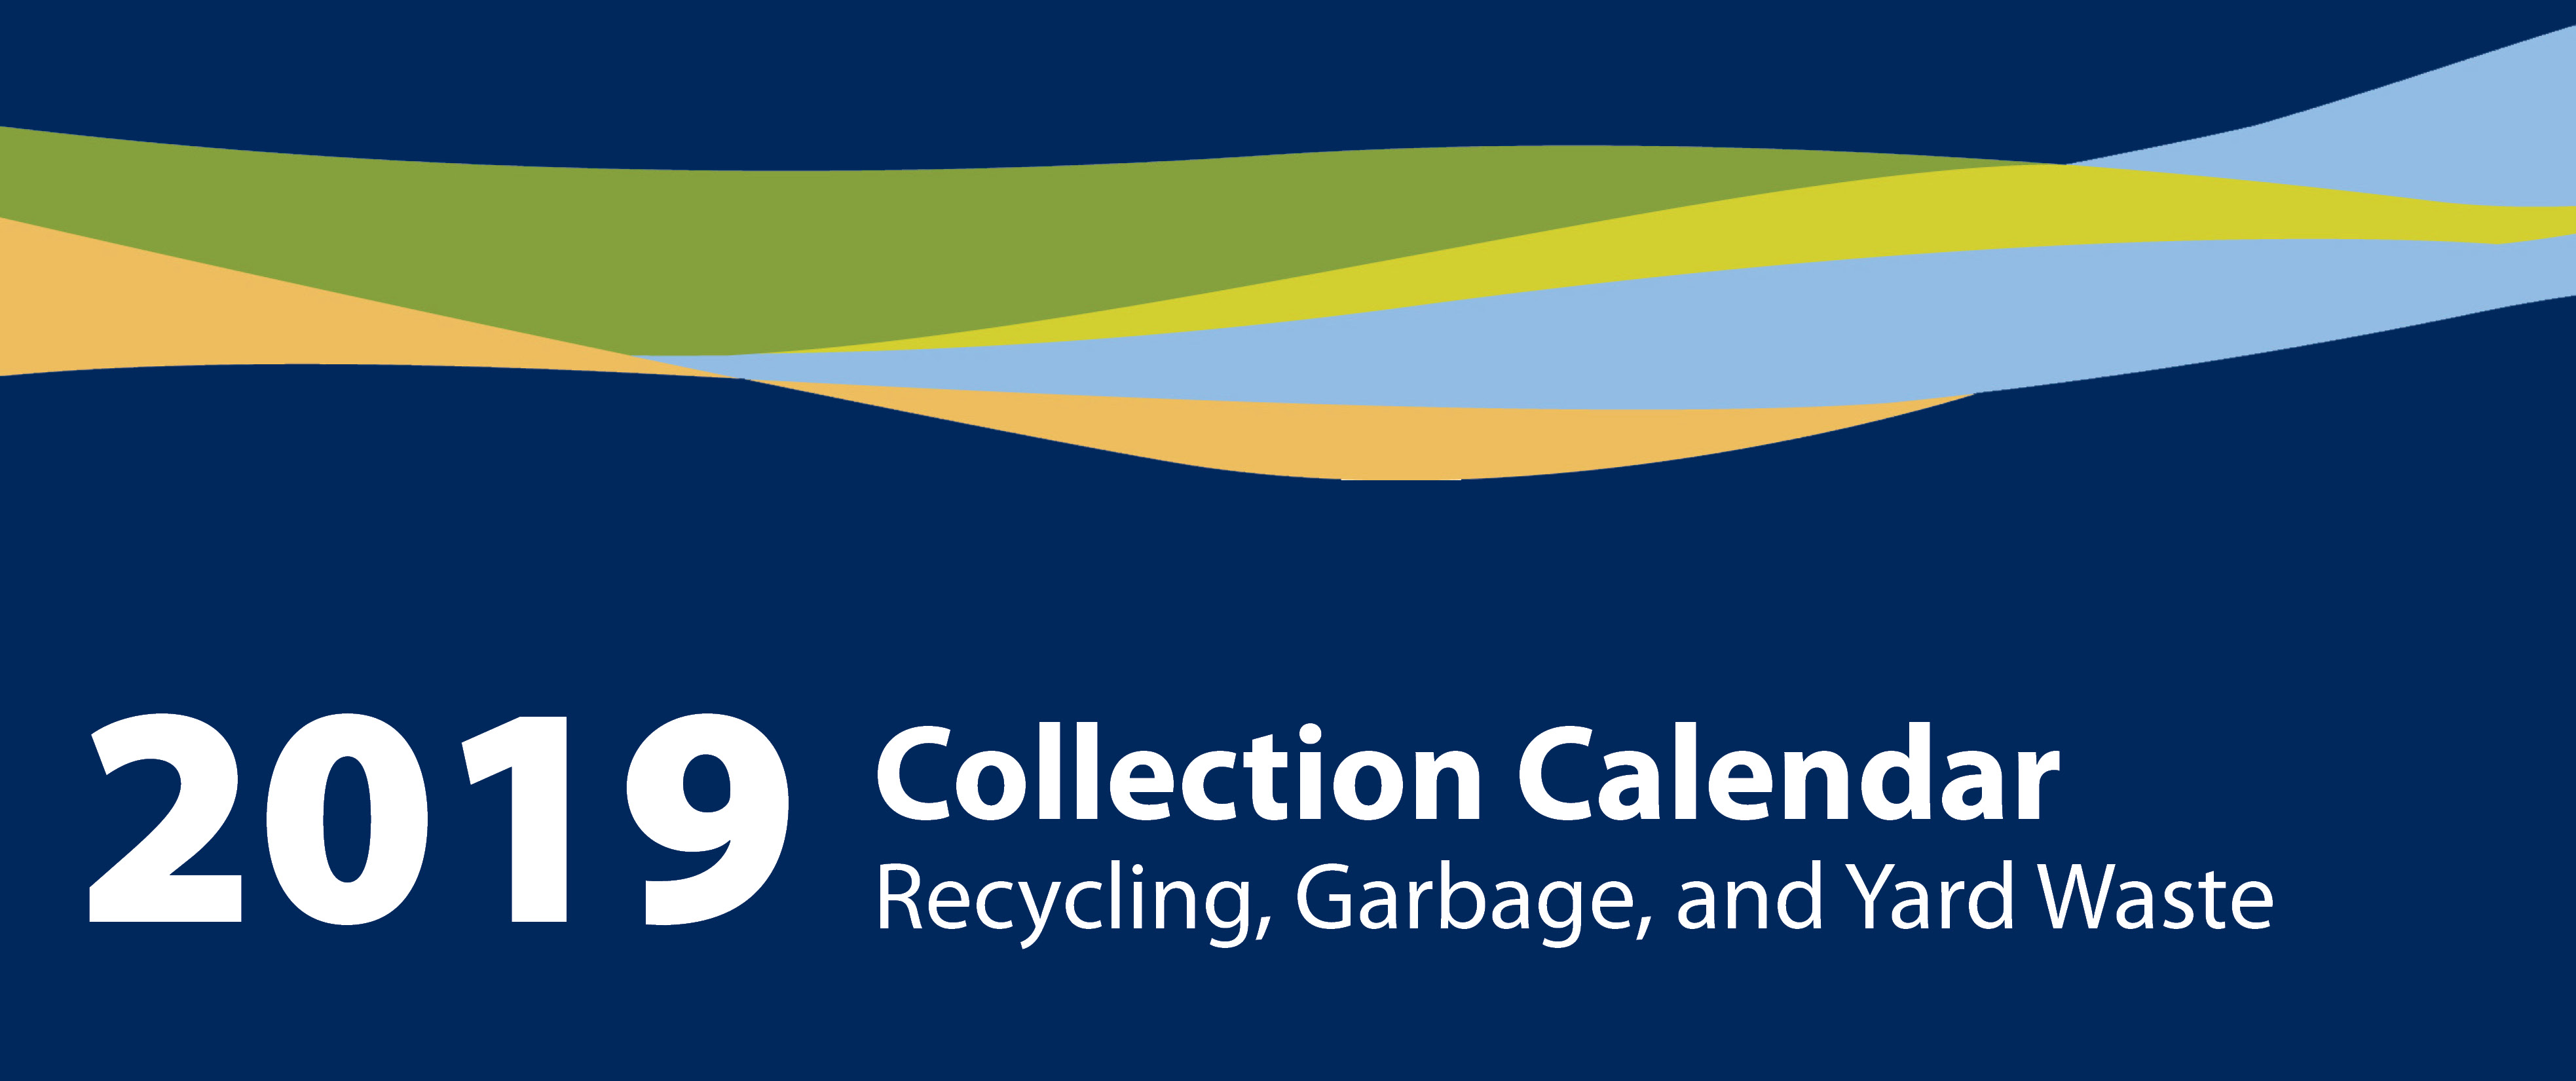 Collection Calendar Banner